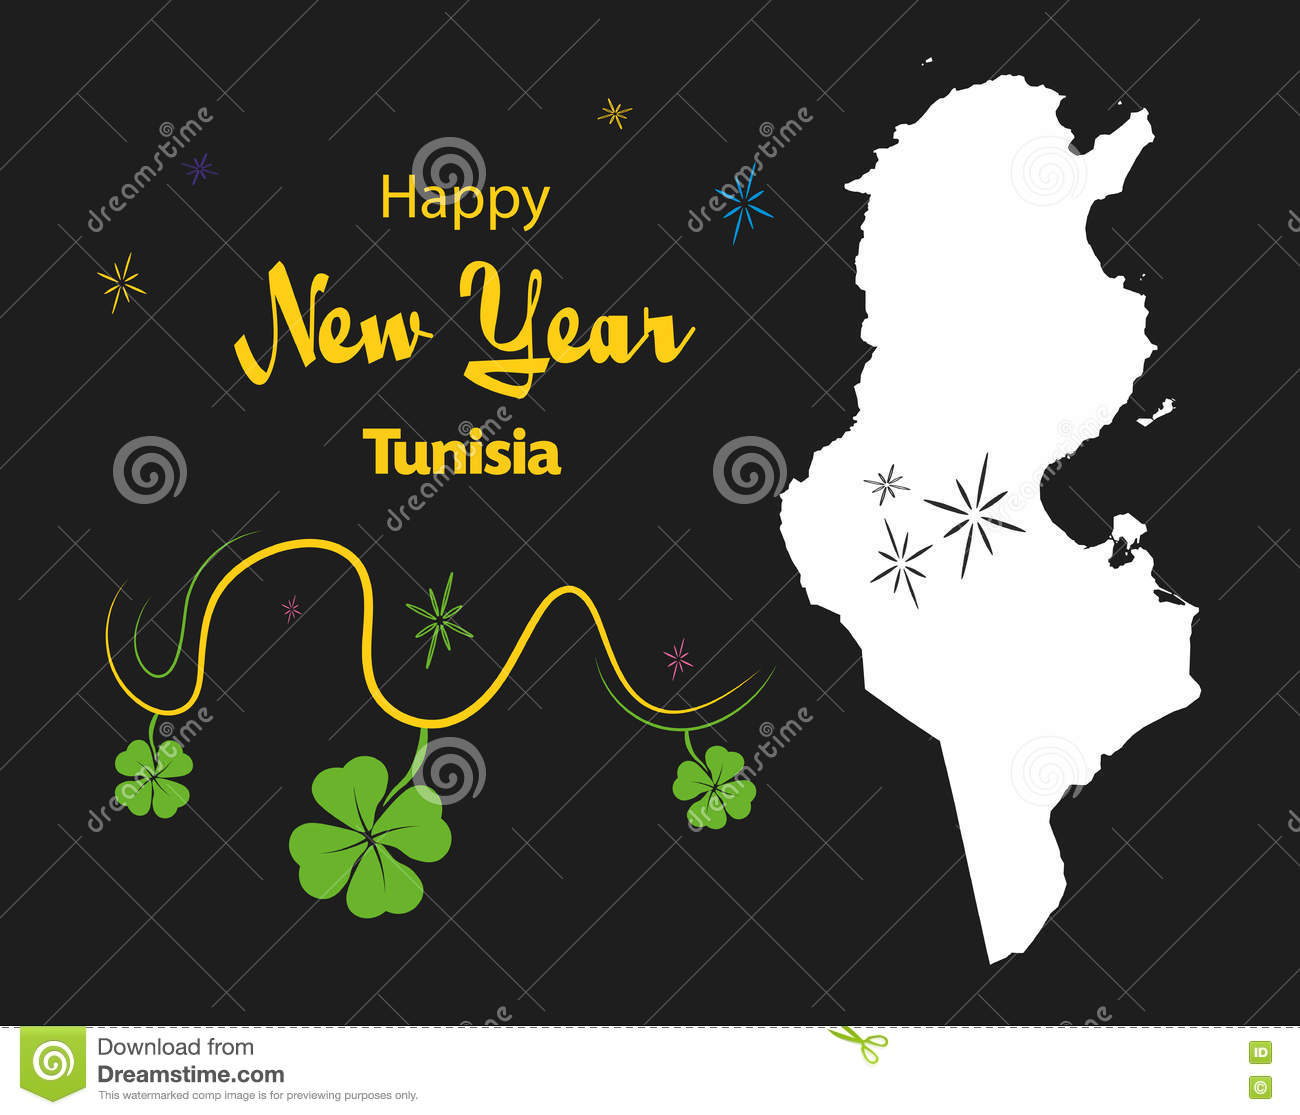 download happy new year theme with map of tunisia stock illustration illustration of simple